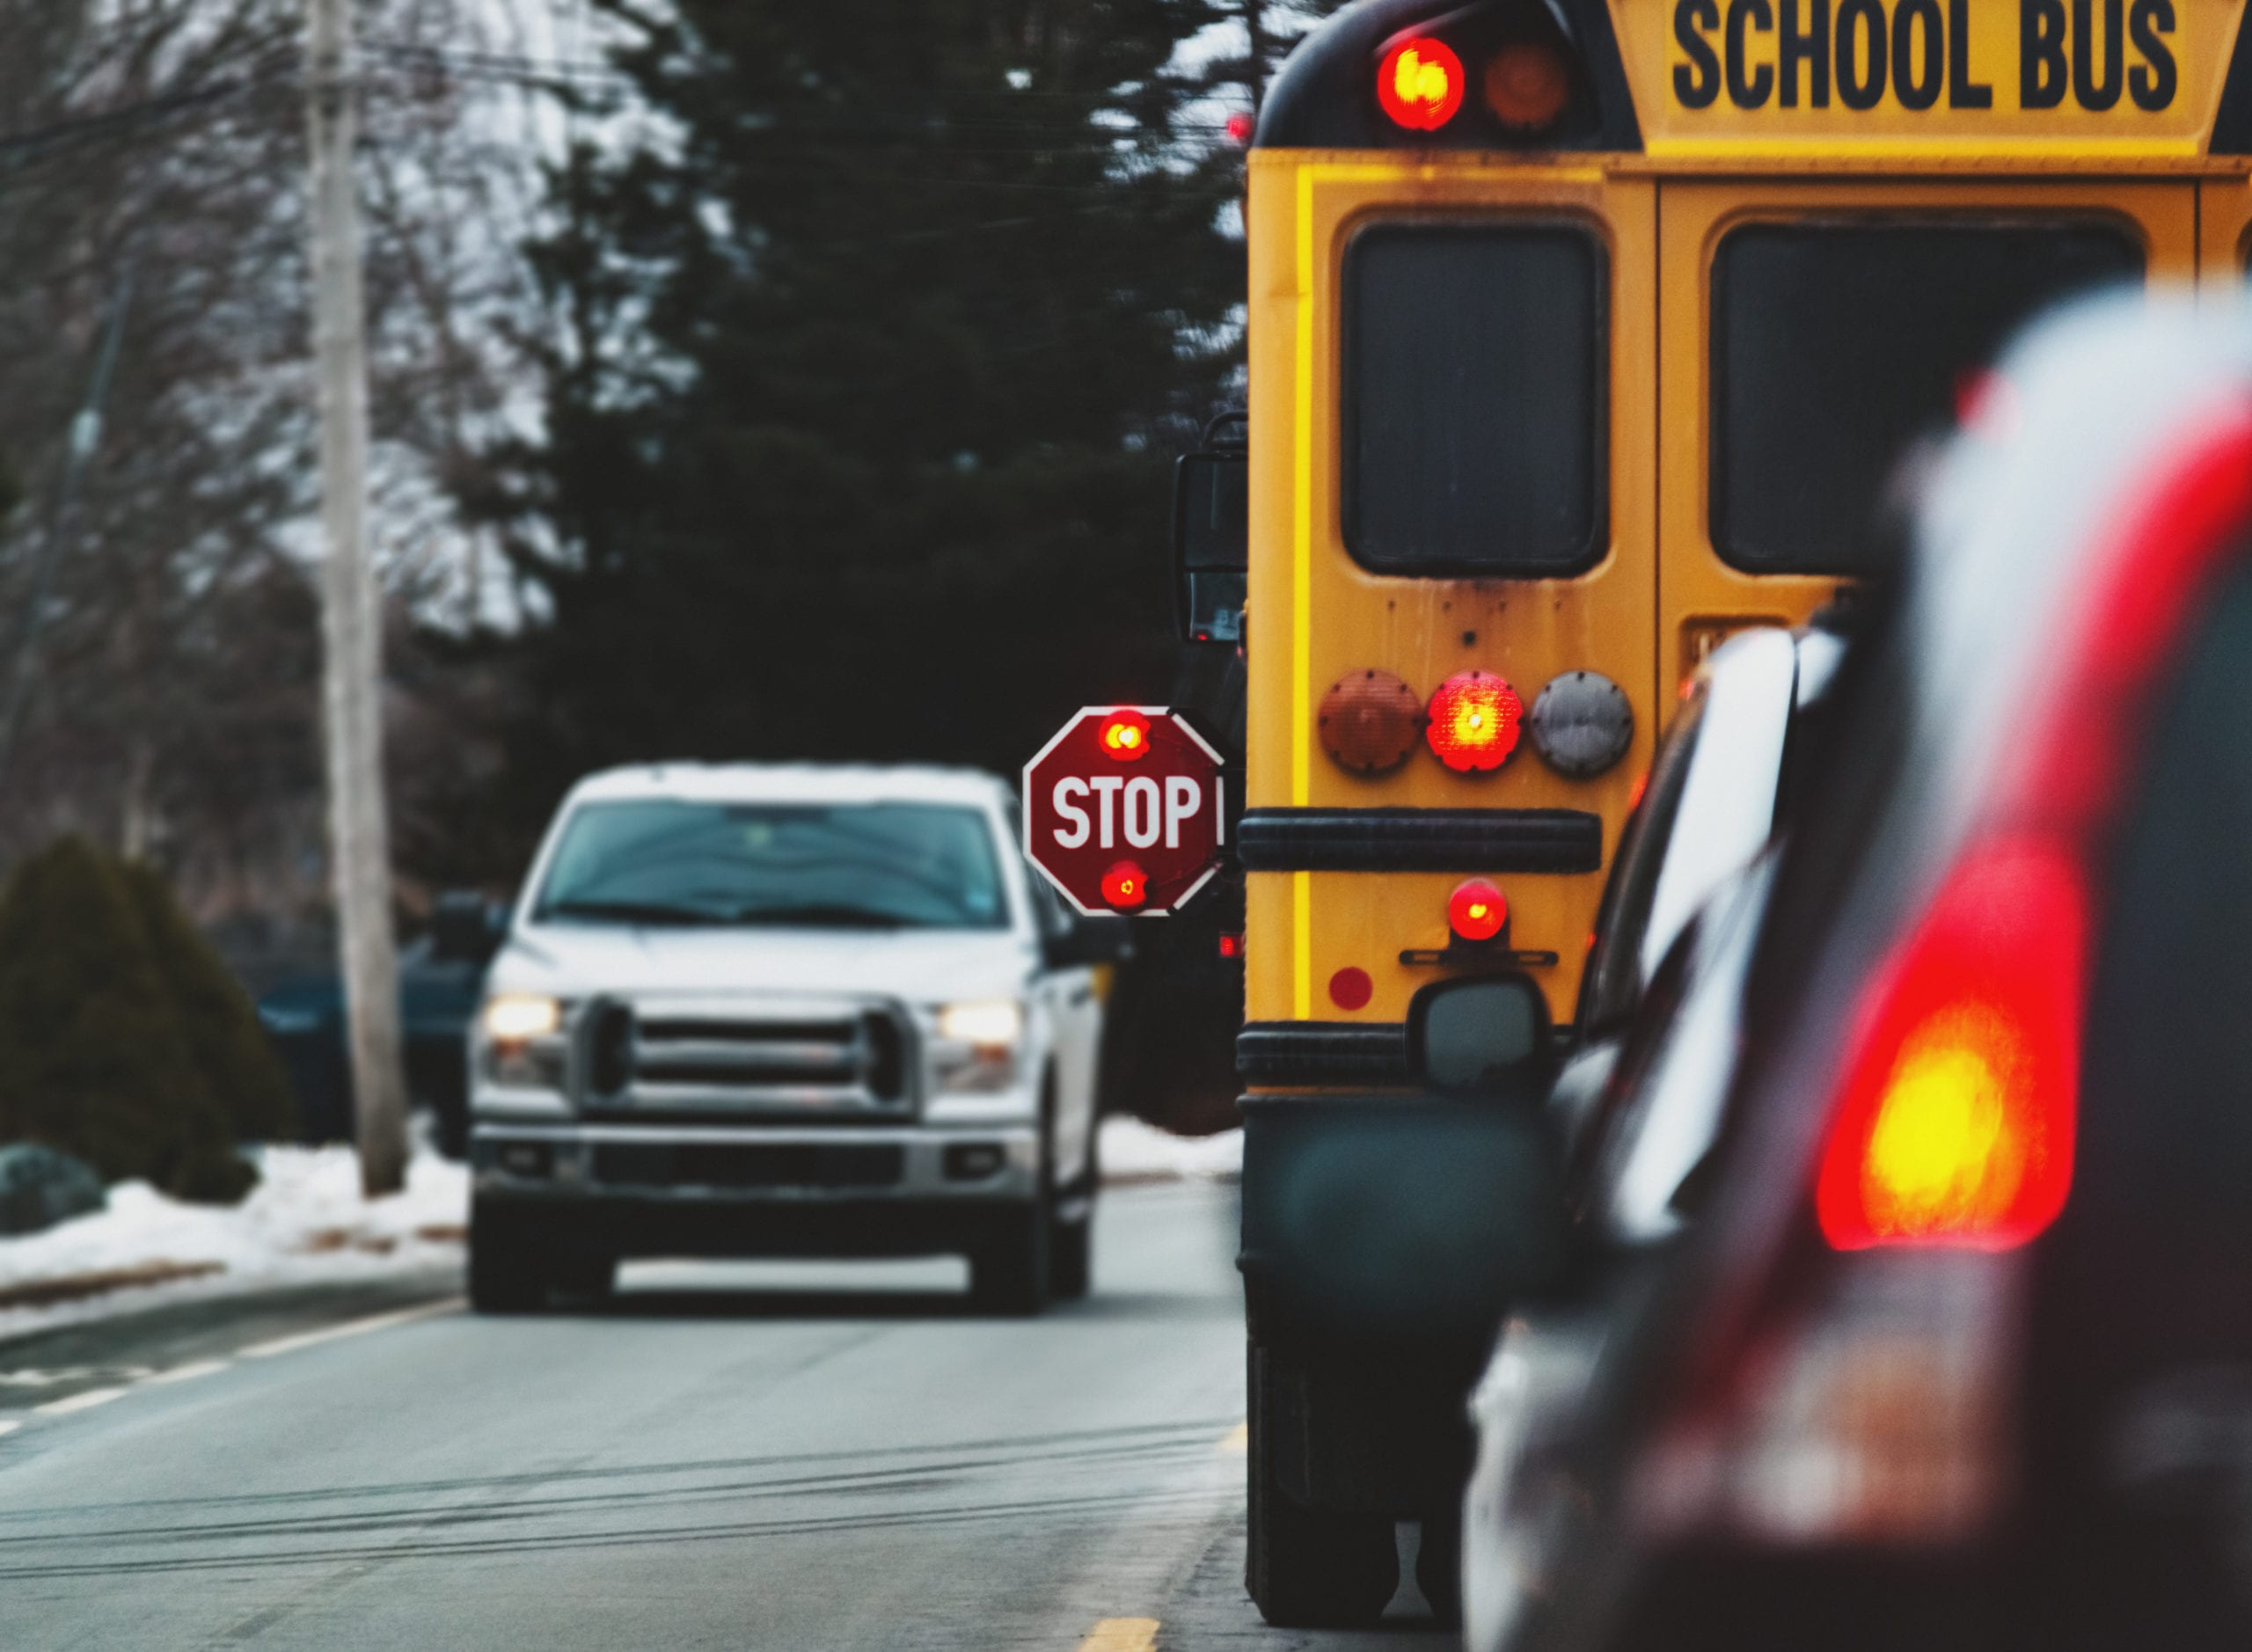 A school bus stops to drop off children.